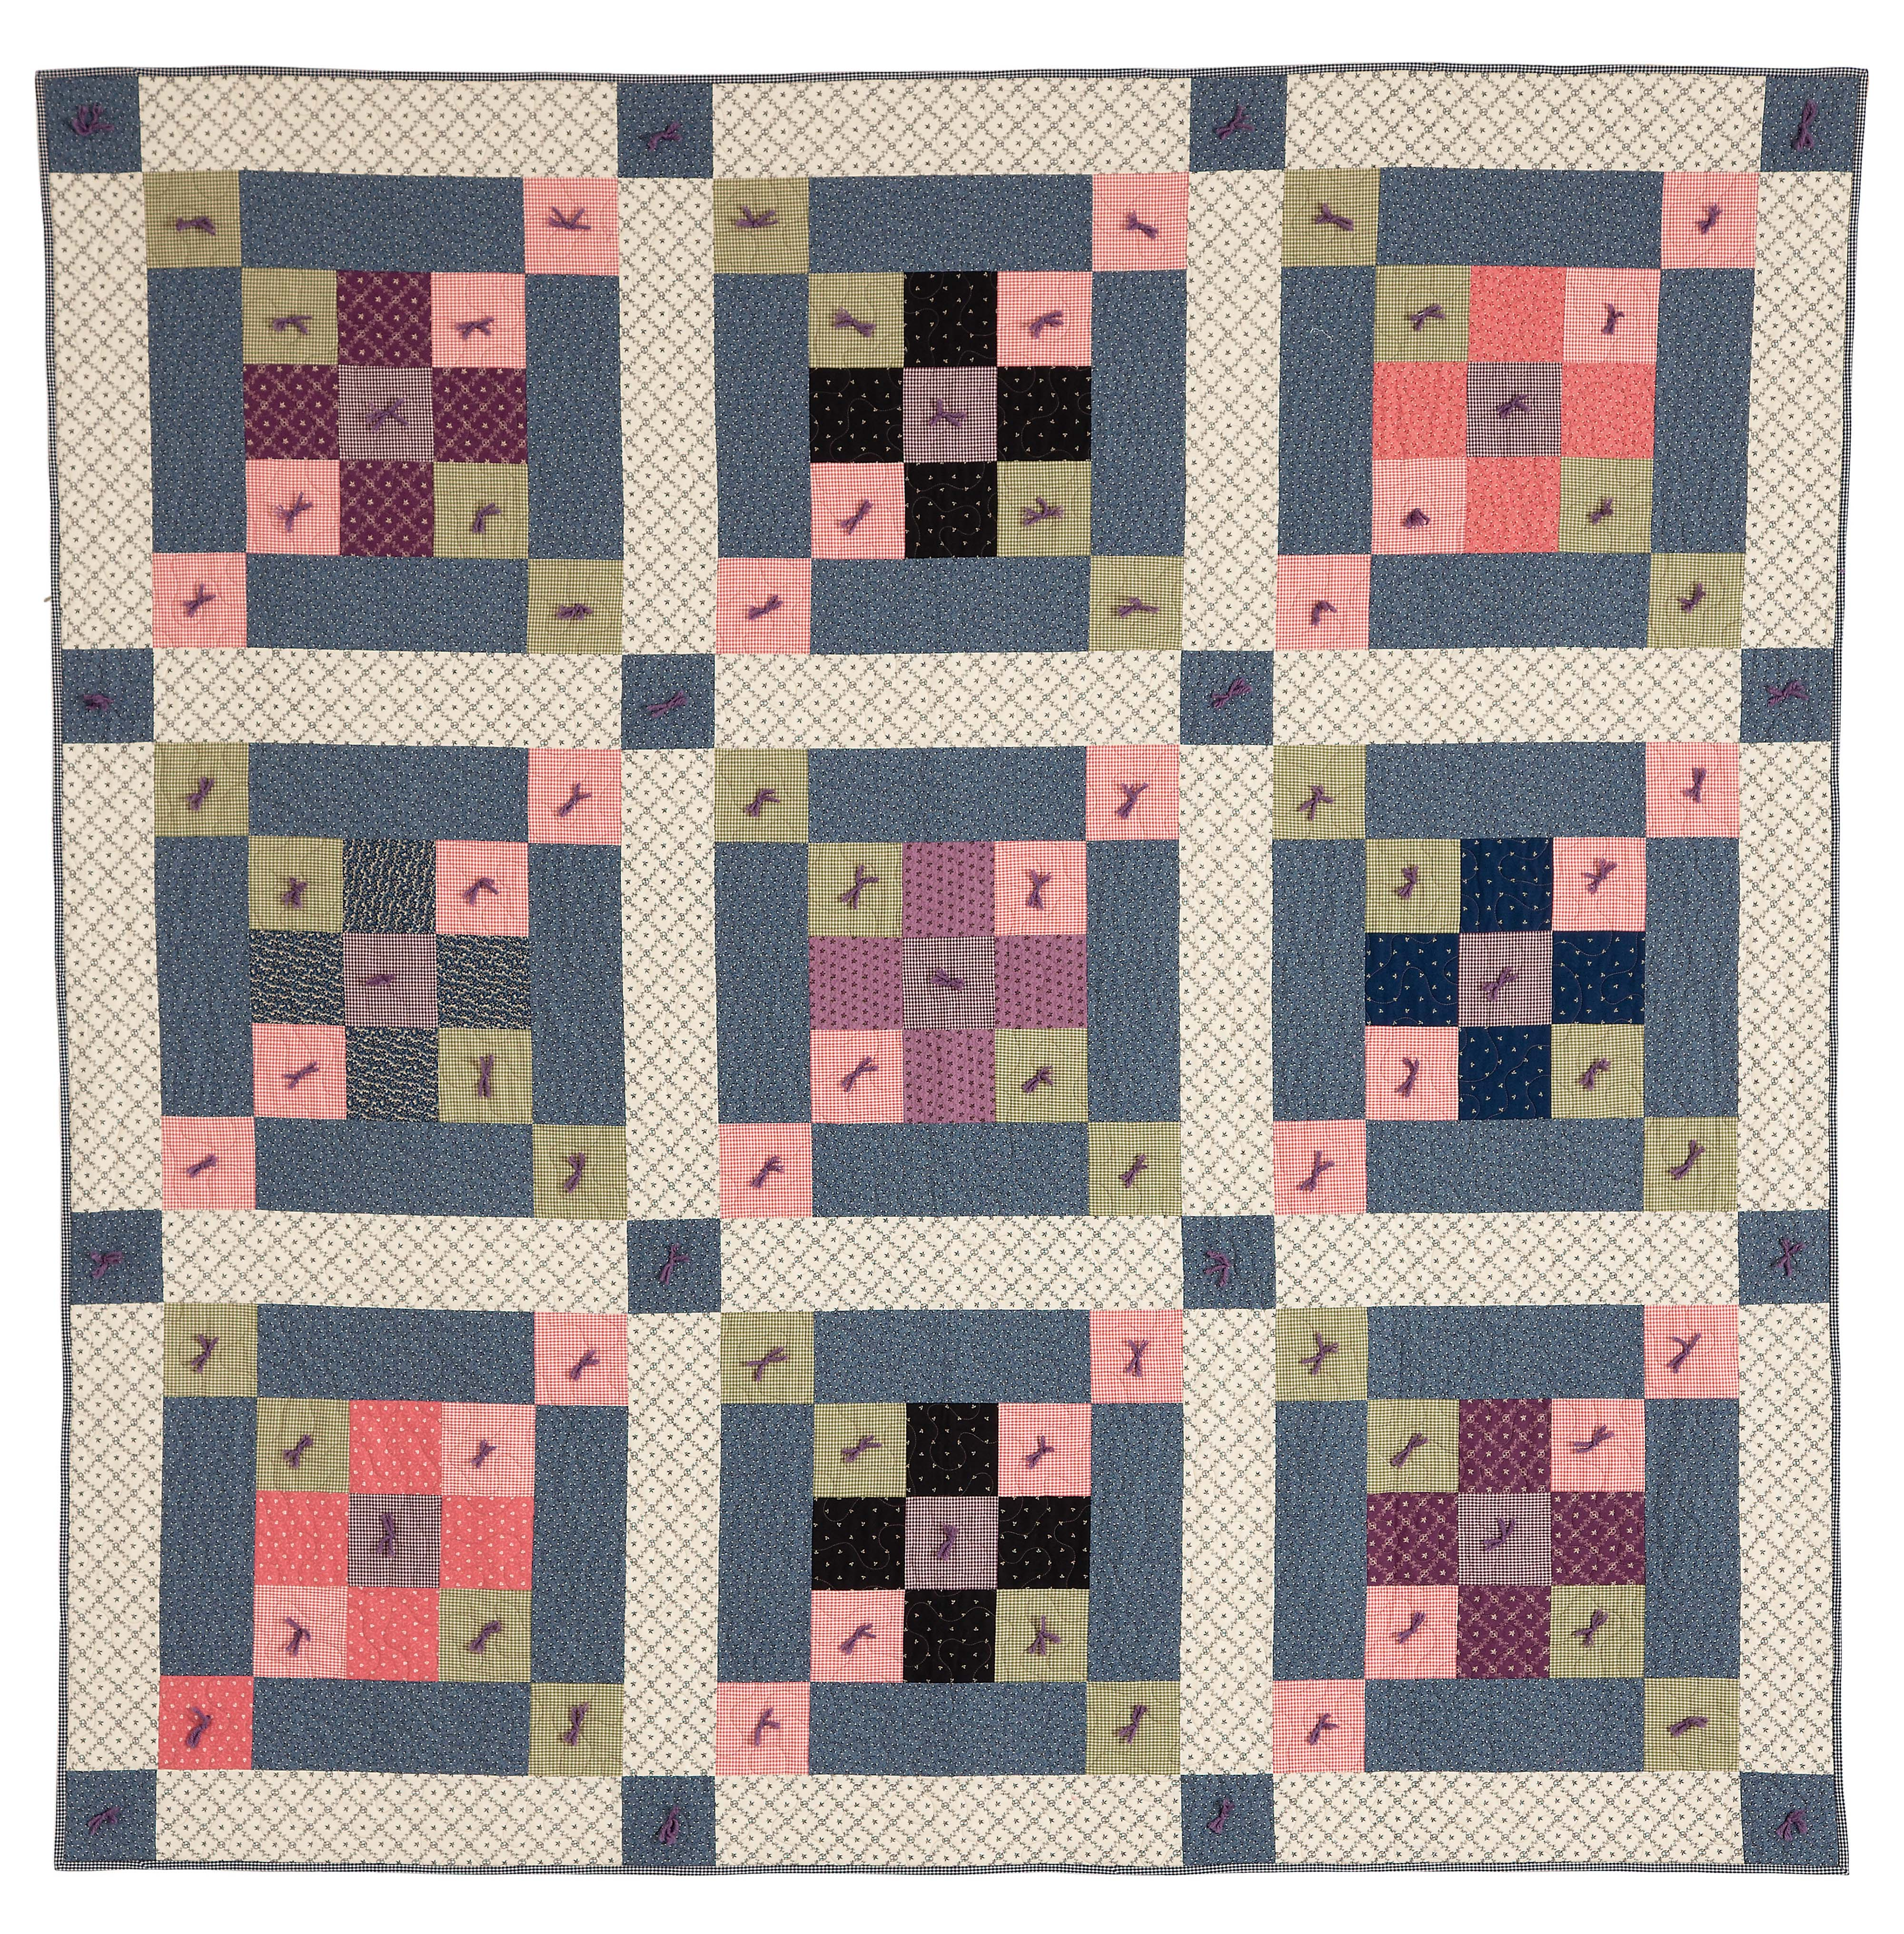 quilt-ties-to-the-past-flat